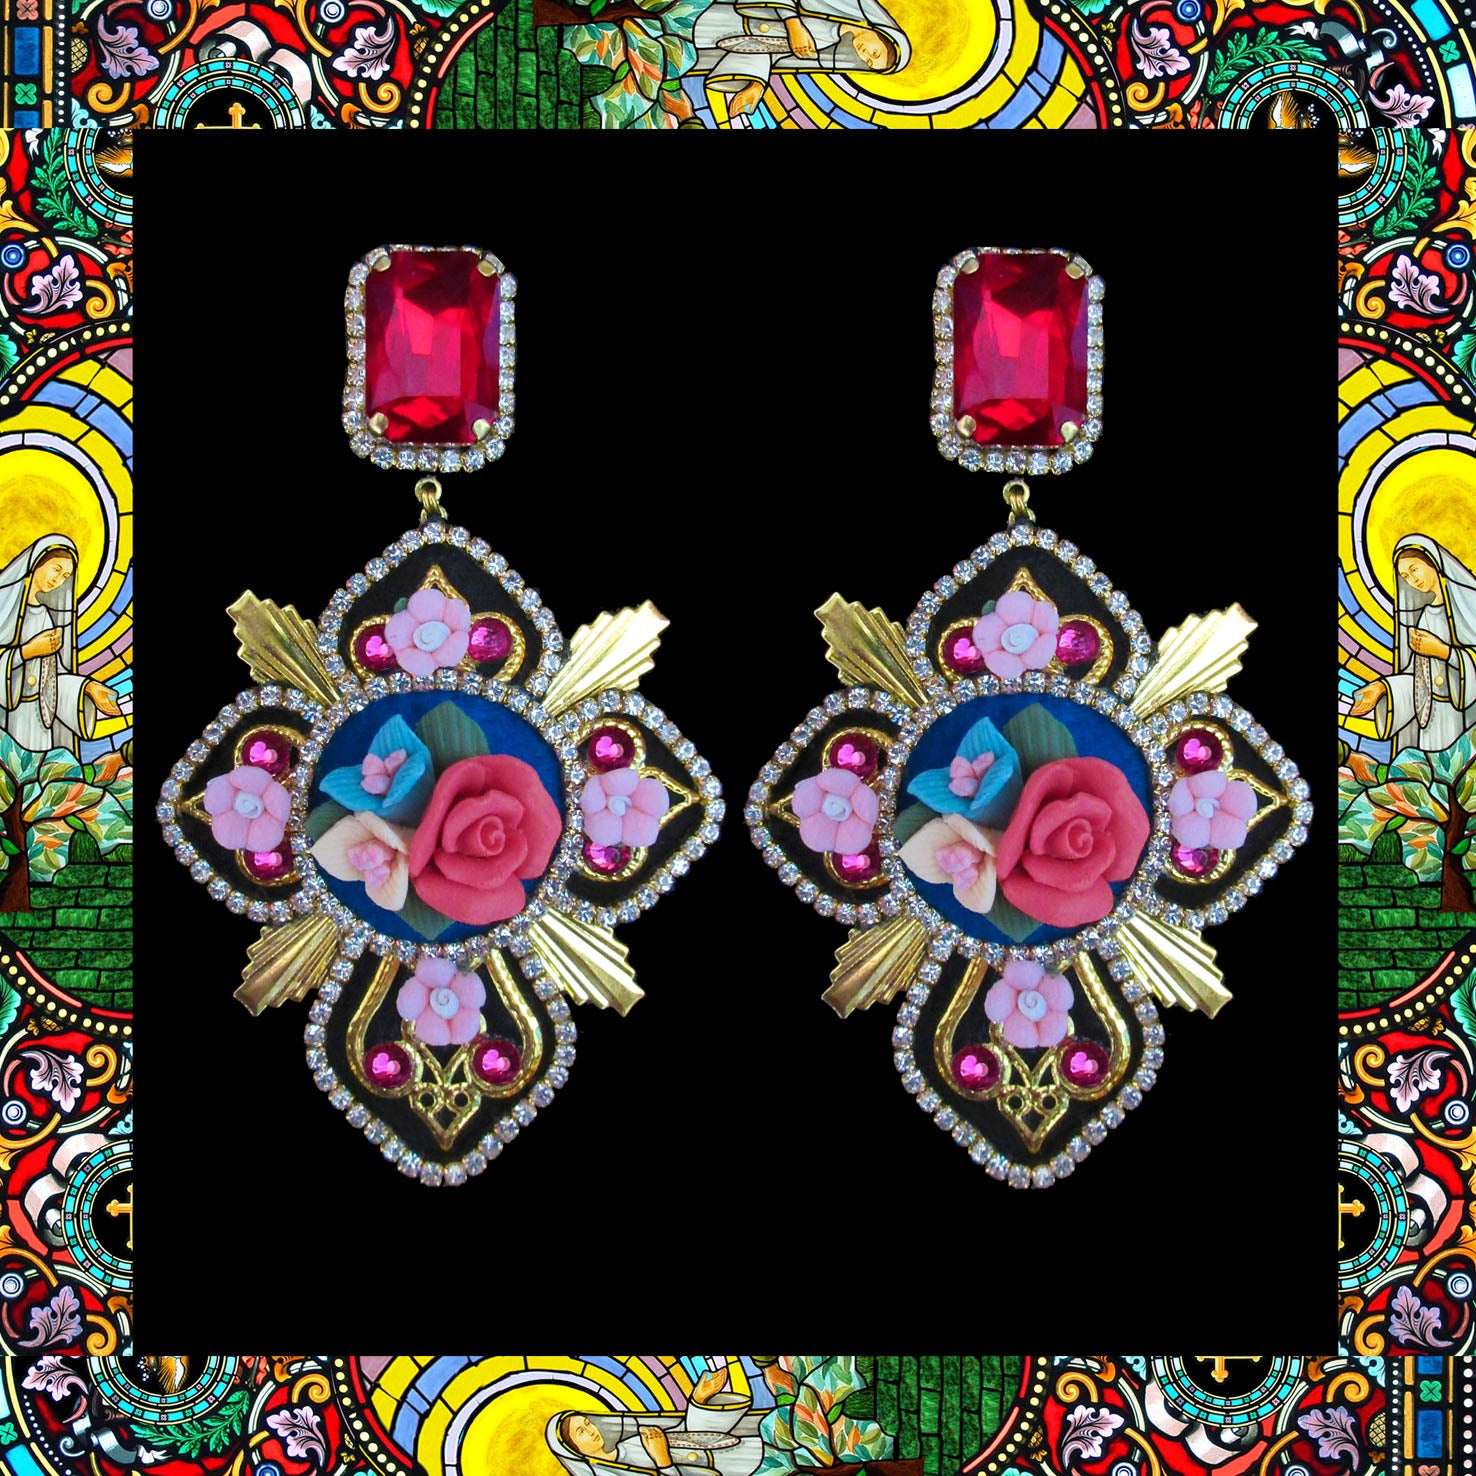 Mouchkine Jewelry couture and luxury cross earrings. Handmade in France, with ceramic flowers & red swarovski crystals.